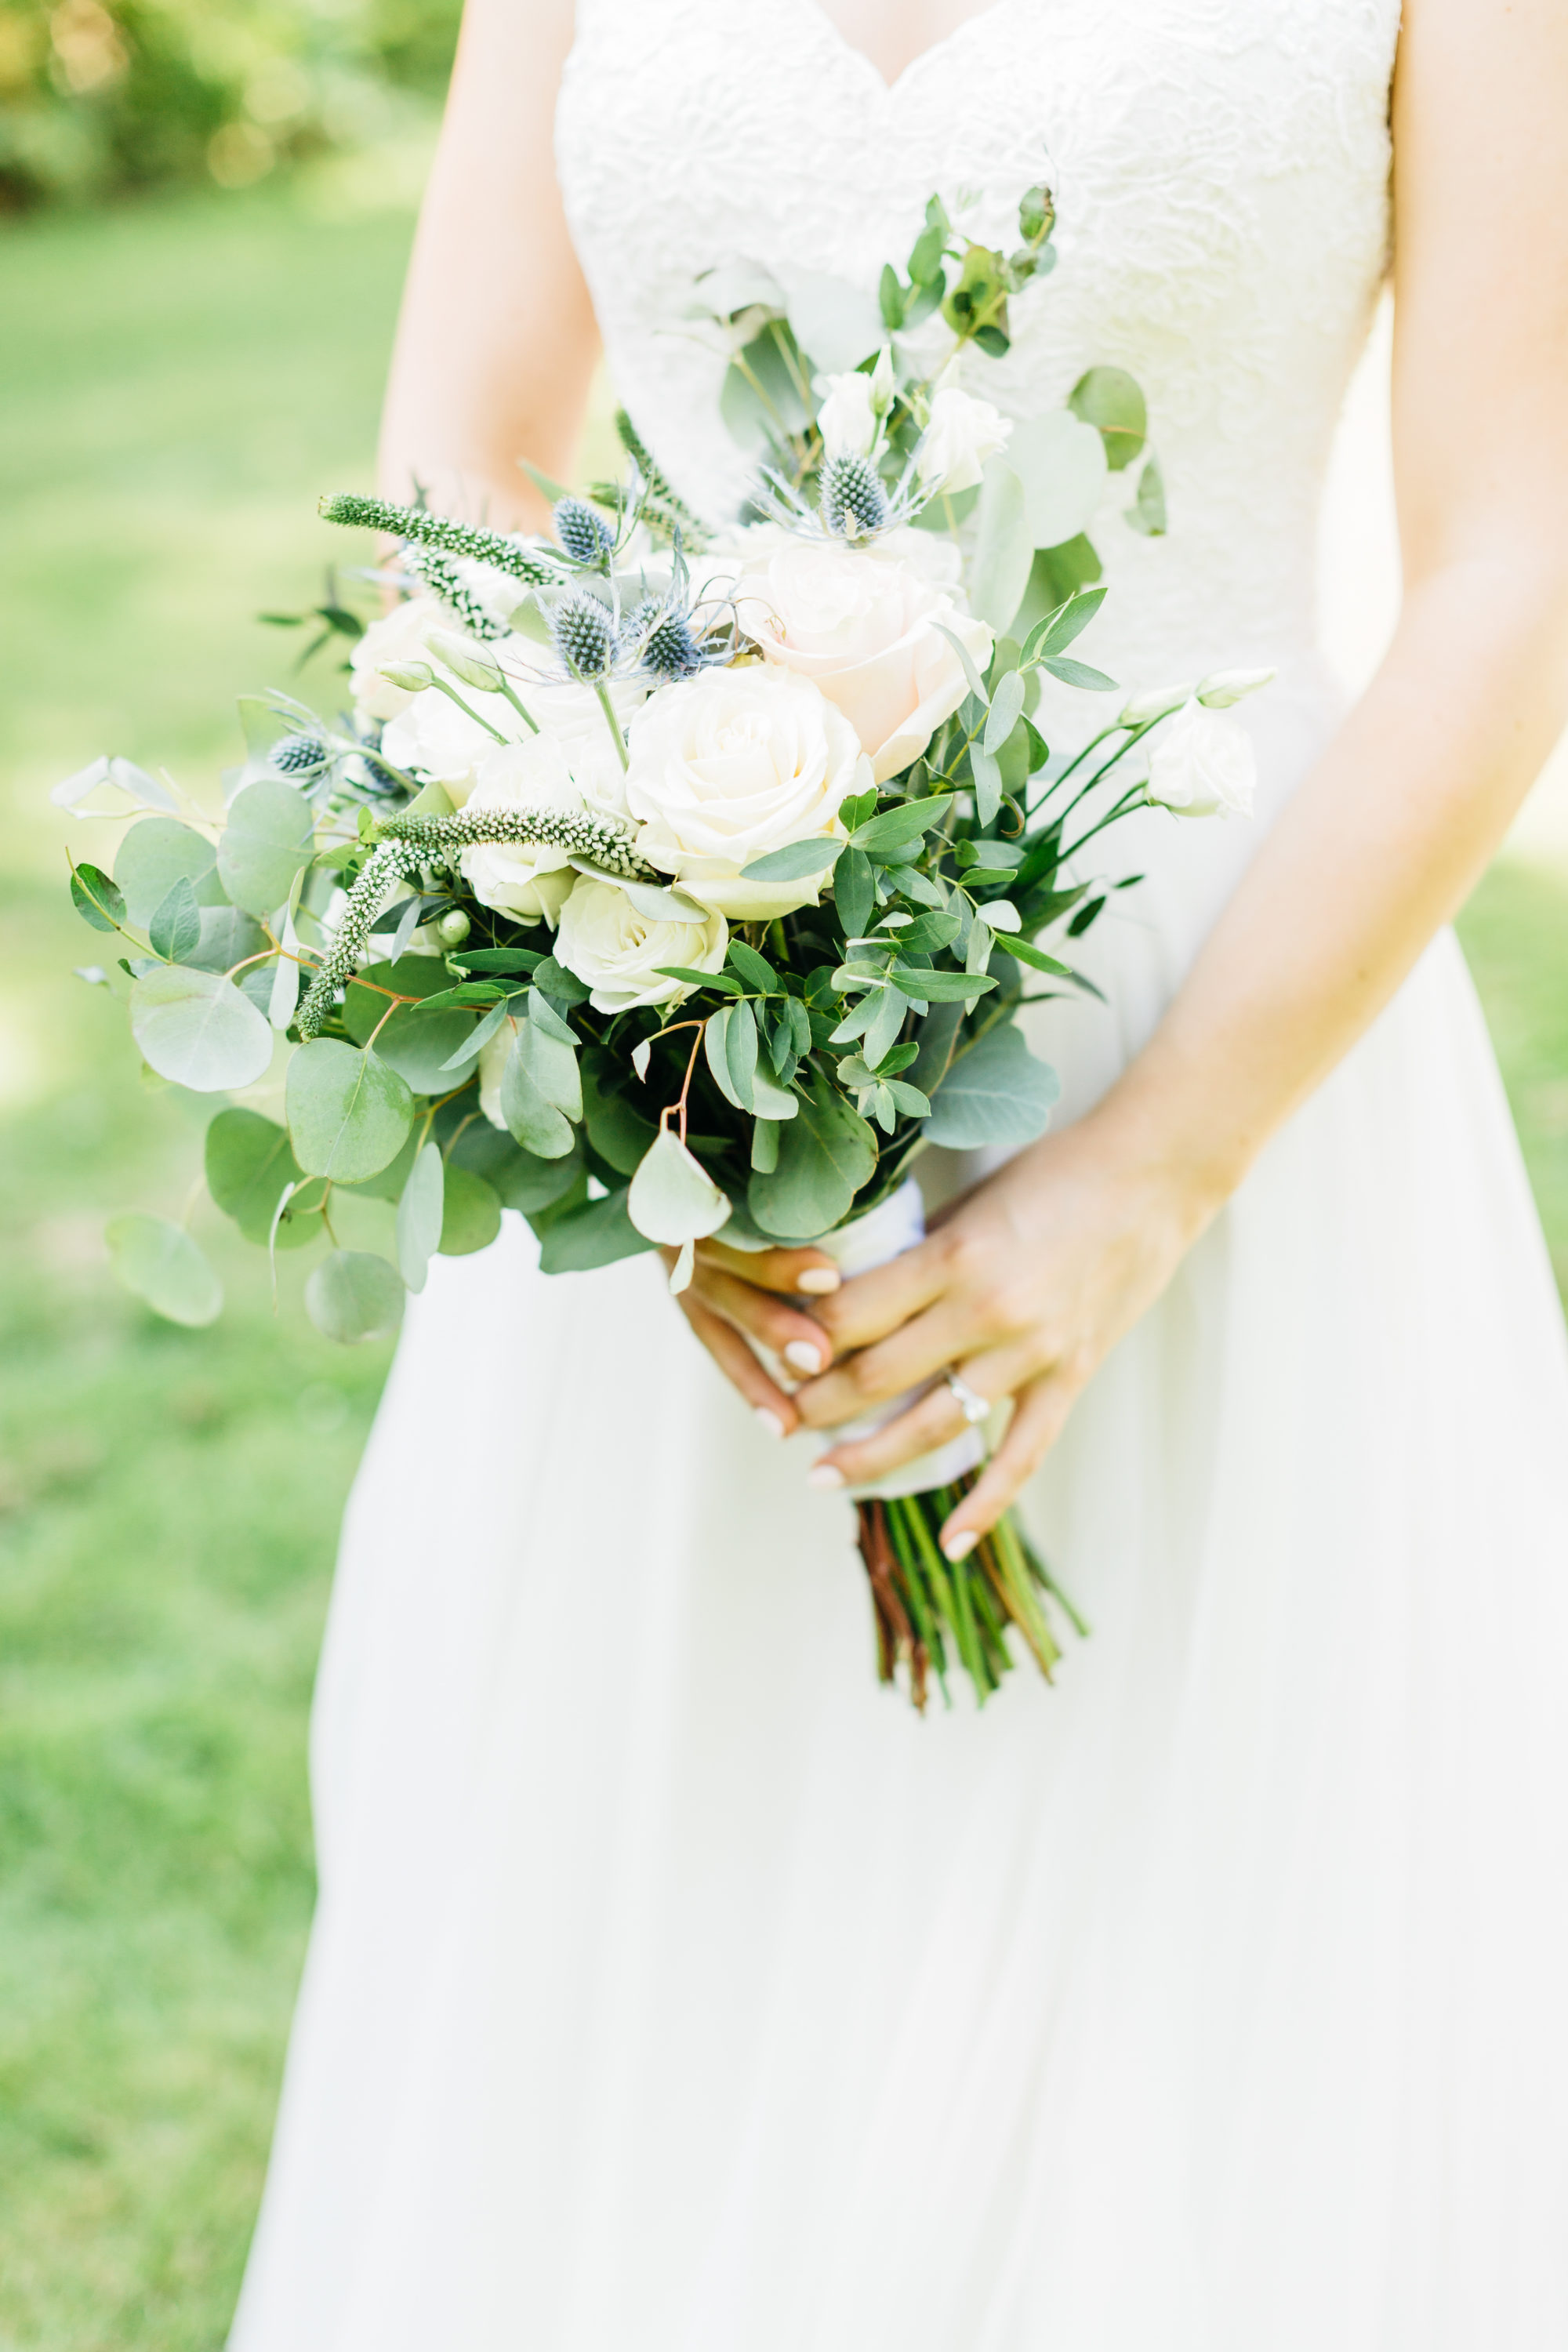 Details of bride's floral bouquet